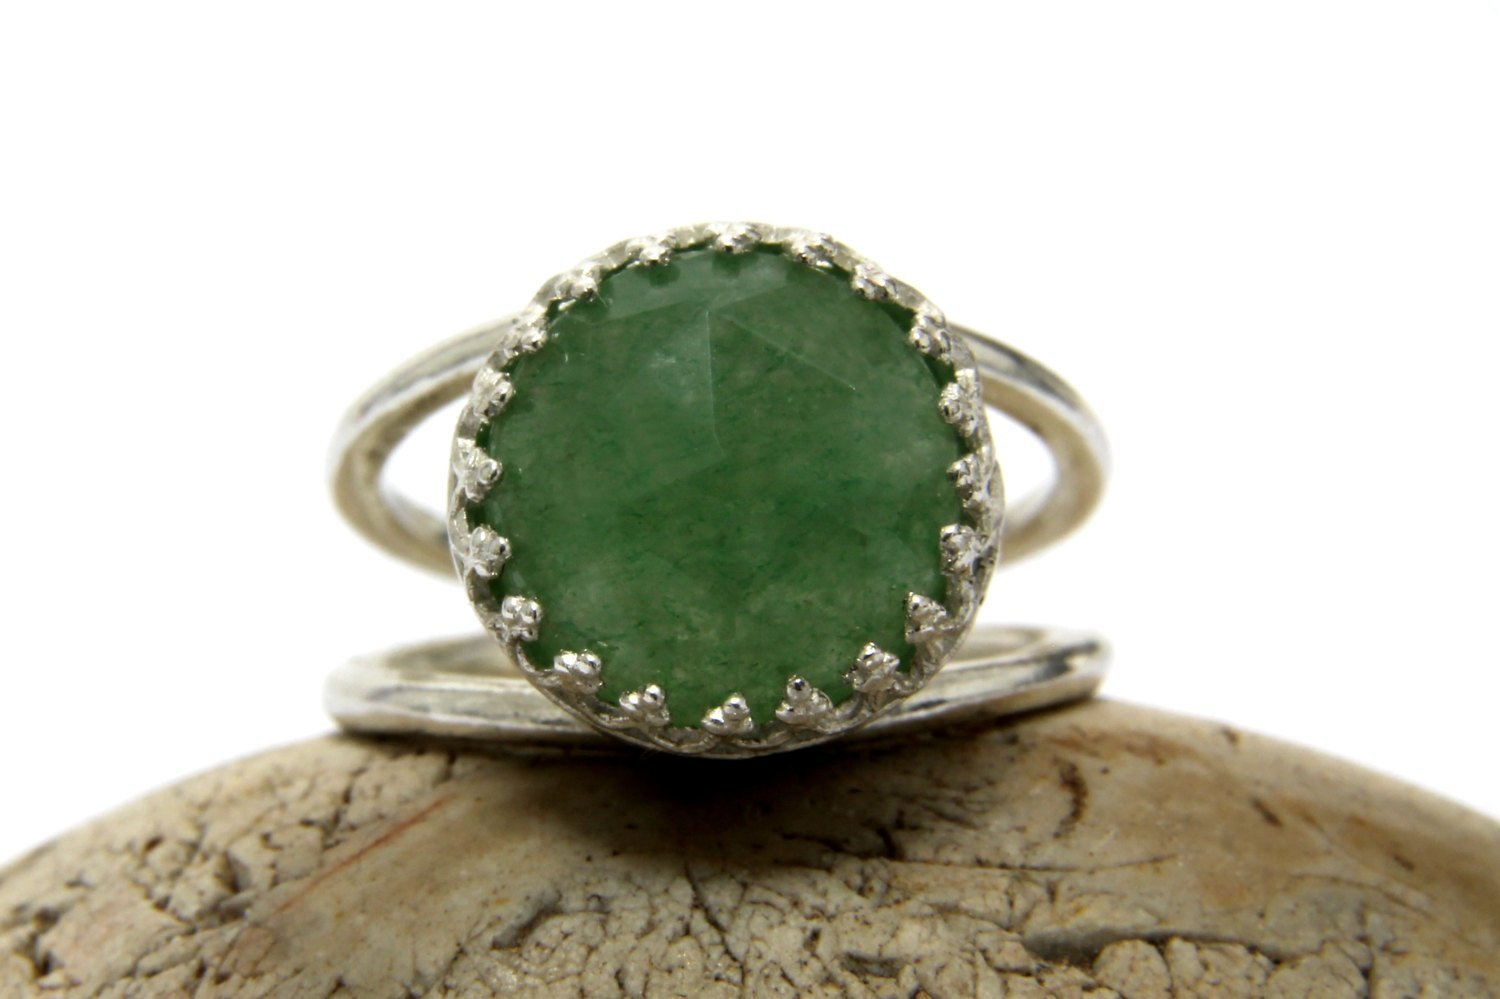 Green ring, aventurine ring, sterling silver ring, mom birthday gift, 21st birthday gift, best friend gift, sisters ring